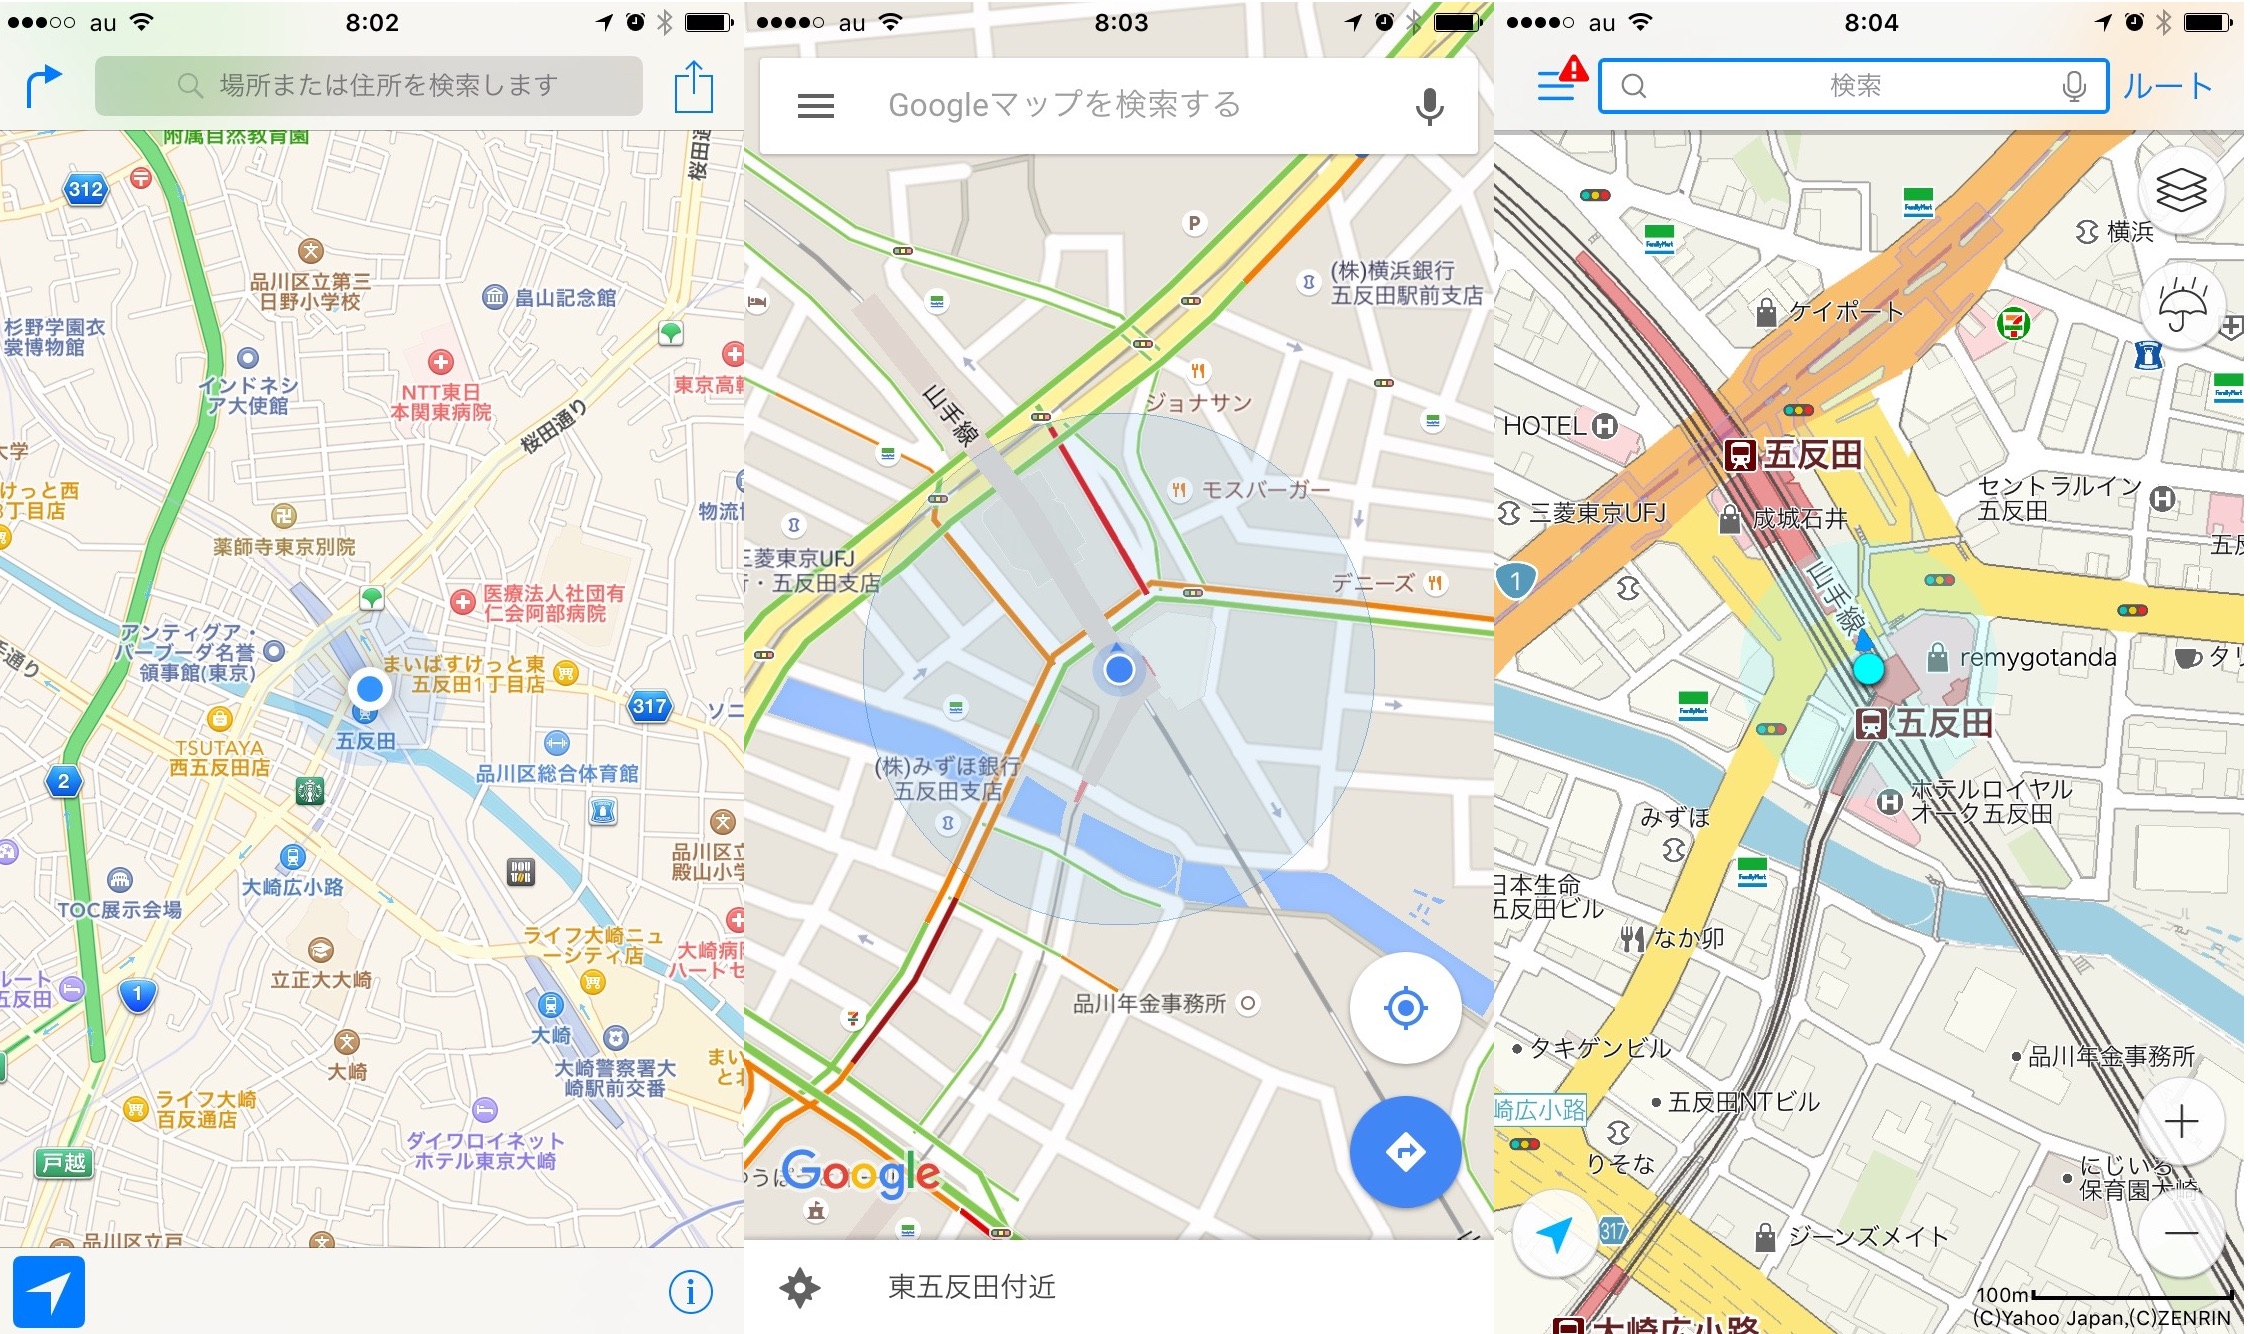 iOS 9 Apple Maps in Japan – Comparison & Review – Ata Distance